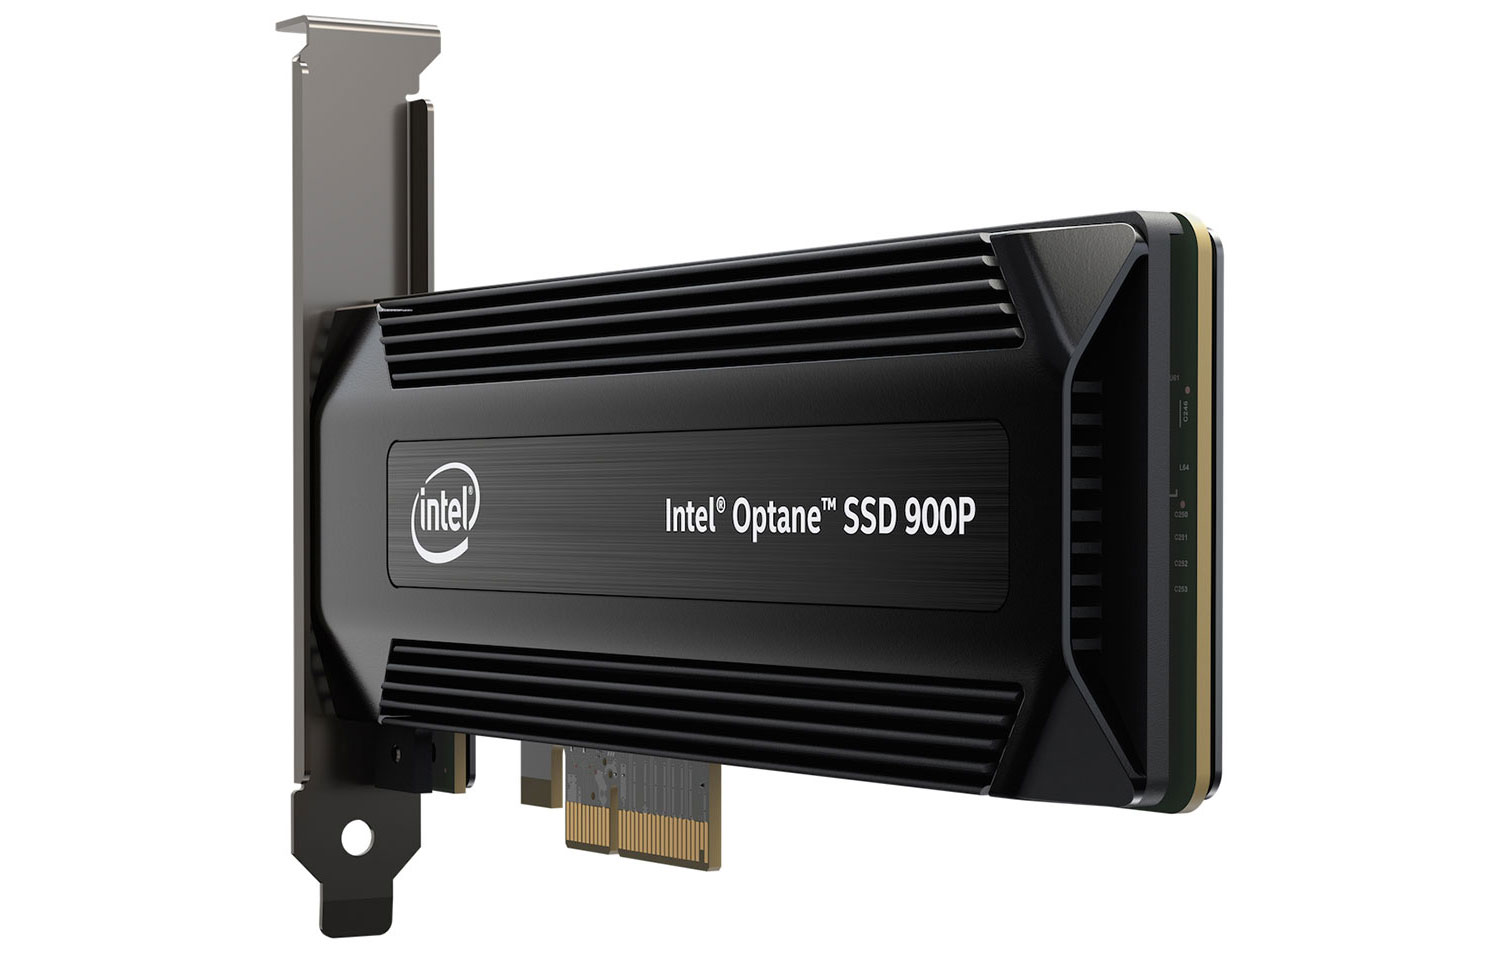 Intel is tripling the capacity of its awesome Optane SSD 900P to 1.5TB